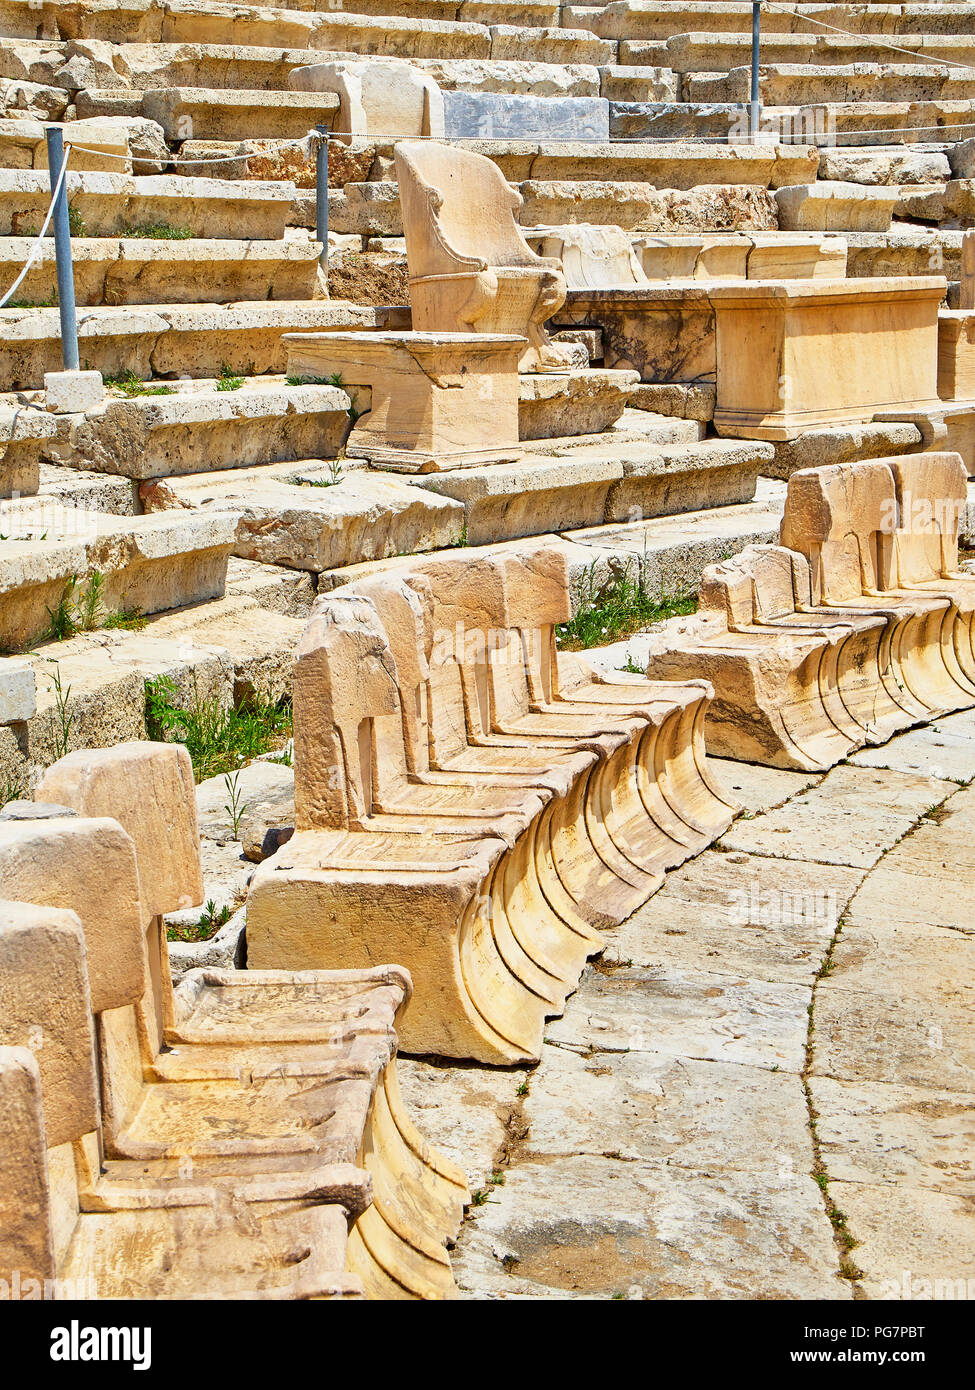 Marble thrones of the Theatre of Dionysus Eleuthereus. Acropolis of Athens. Attica region, Greece. - Stock Image